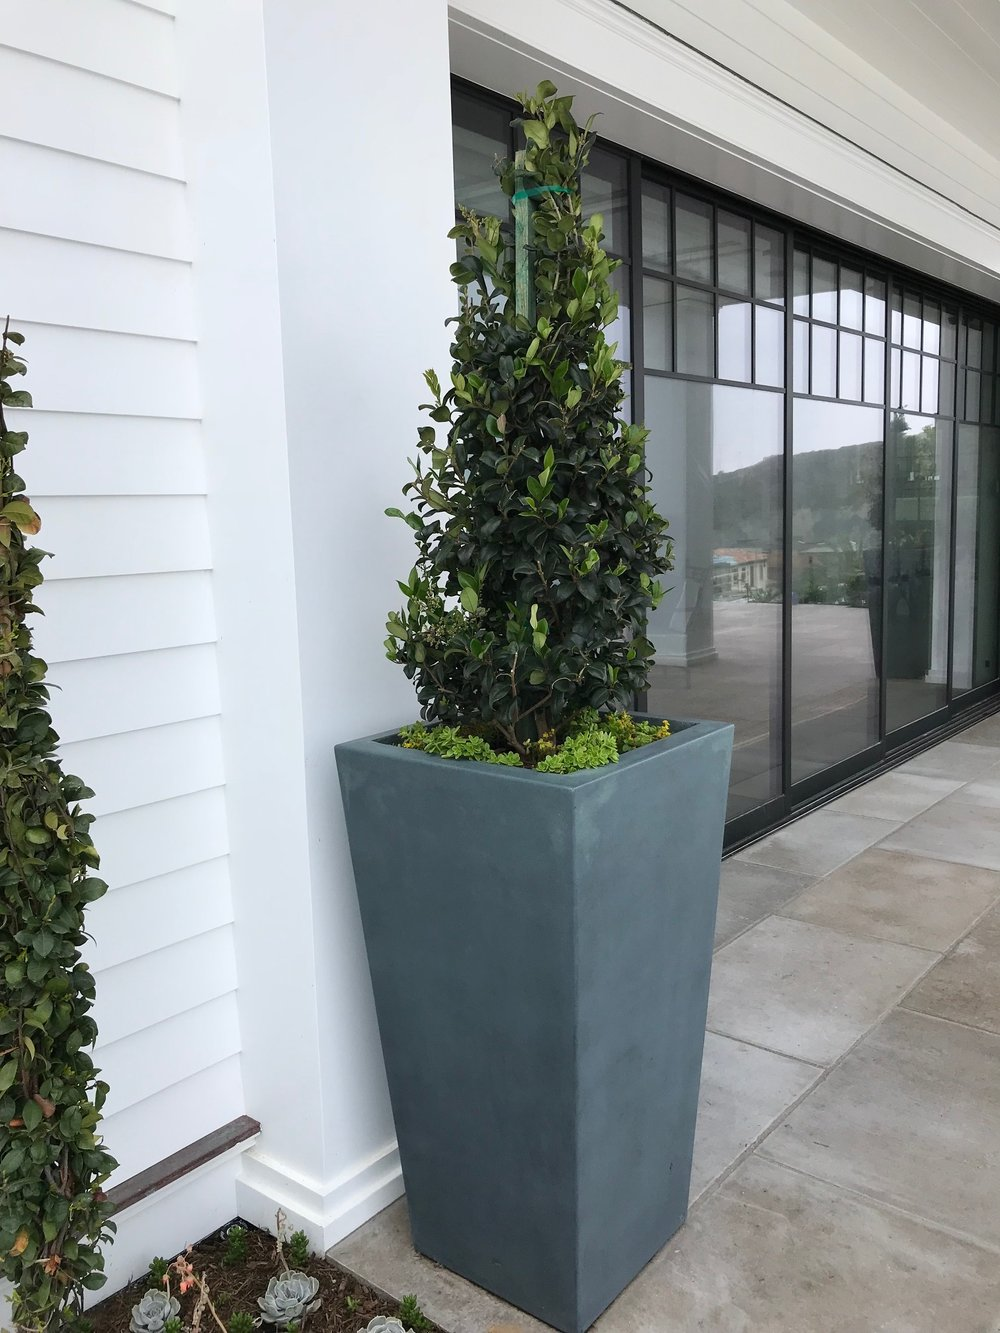 Planting next to the white wall construction in Dana Point